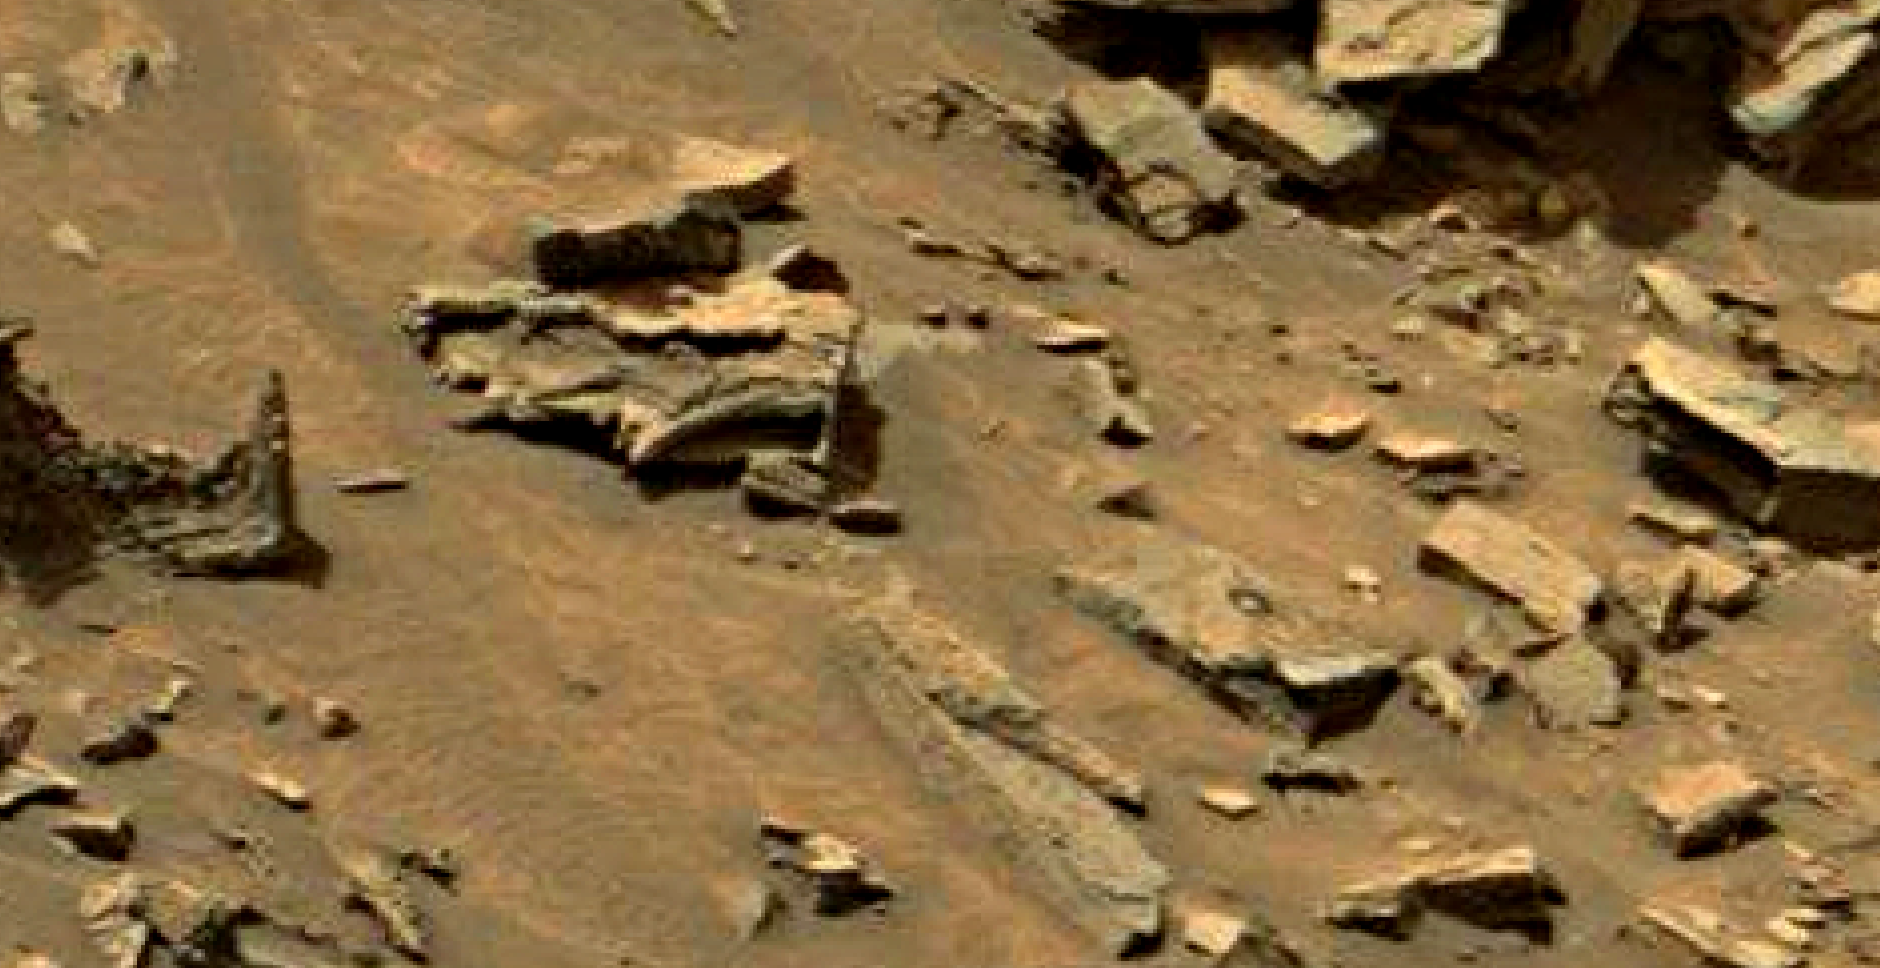 mars sol 1447 anomaly artifacts 3 - was life on mars